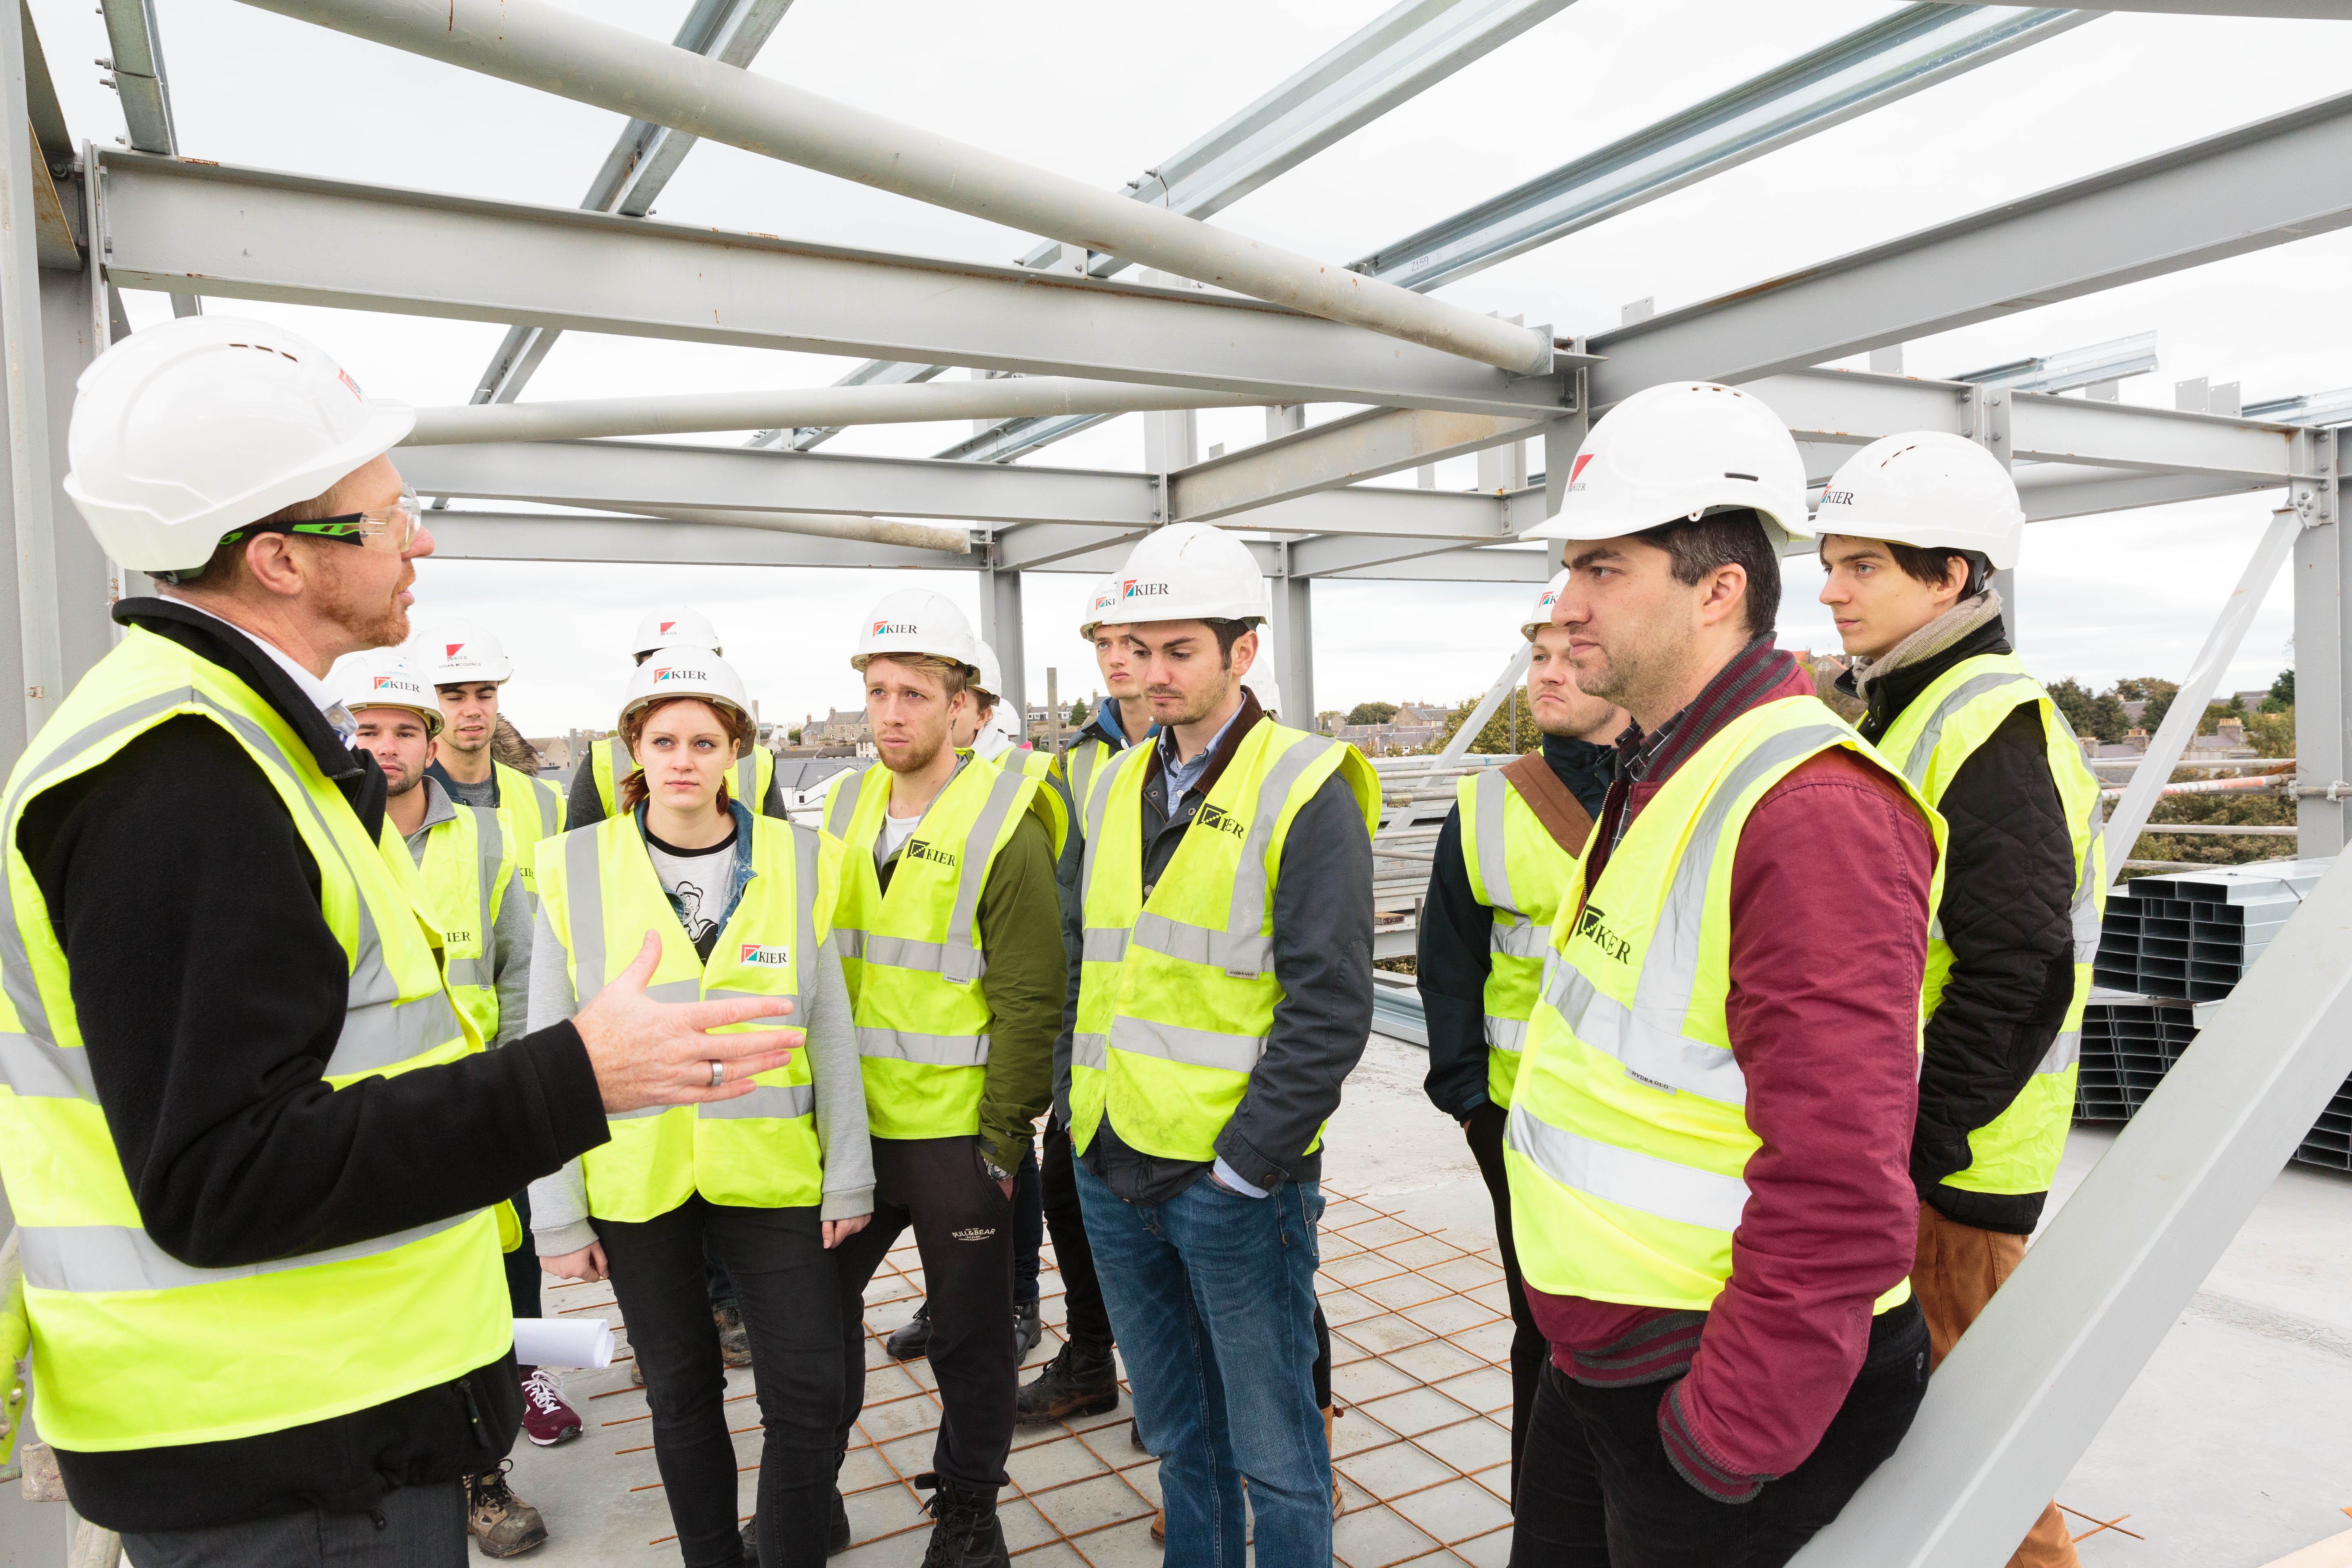 Tuesday 20th October 2015, Aberdeen, Scotland. Students from the University of Aberdeen's structural engineering degree course, on a site tour at Alumno Developments student accommodation. (Photo:Ross Johnston/Newsline Media)